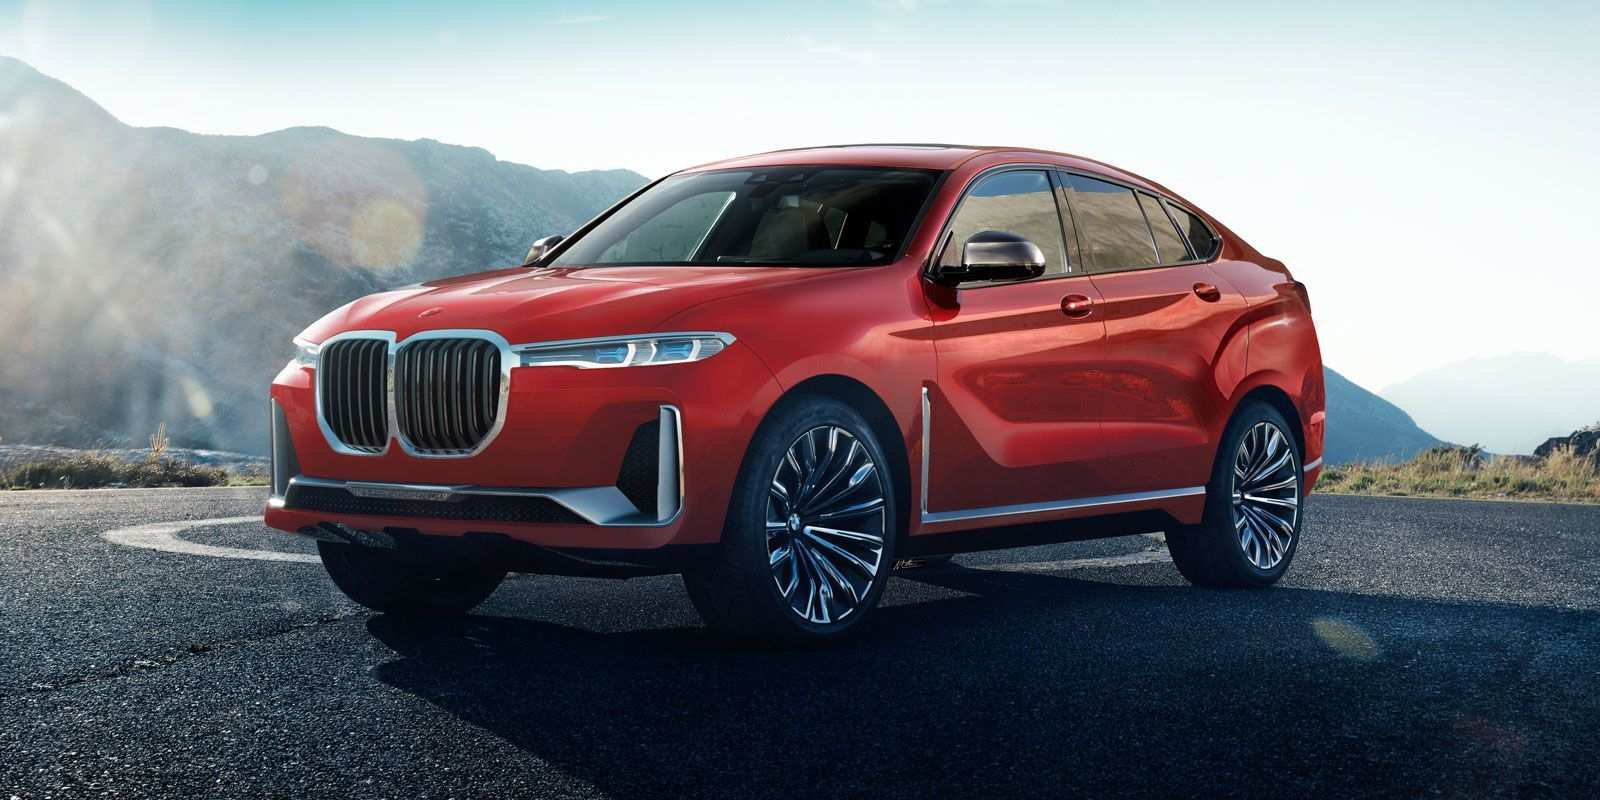 62 All New 2019 Bmw Sierra Trim Levels Redesign And Review